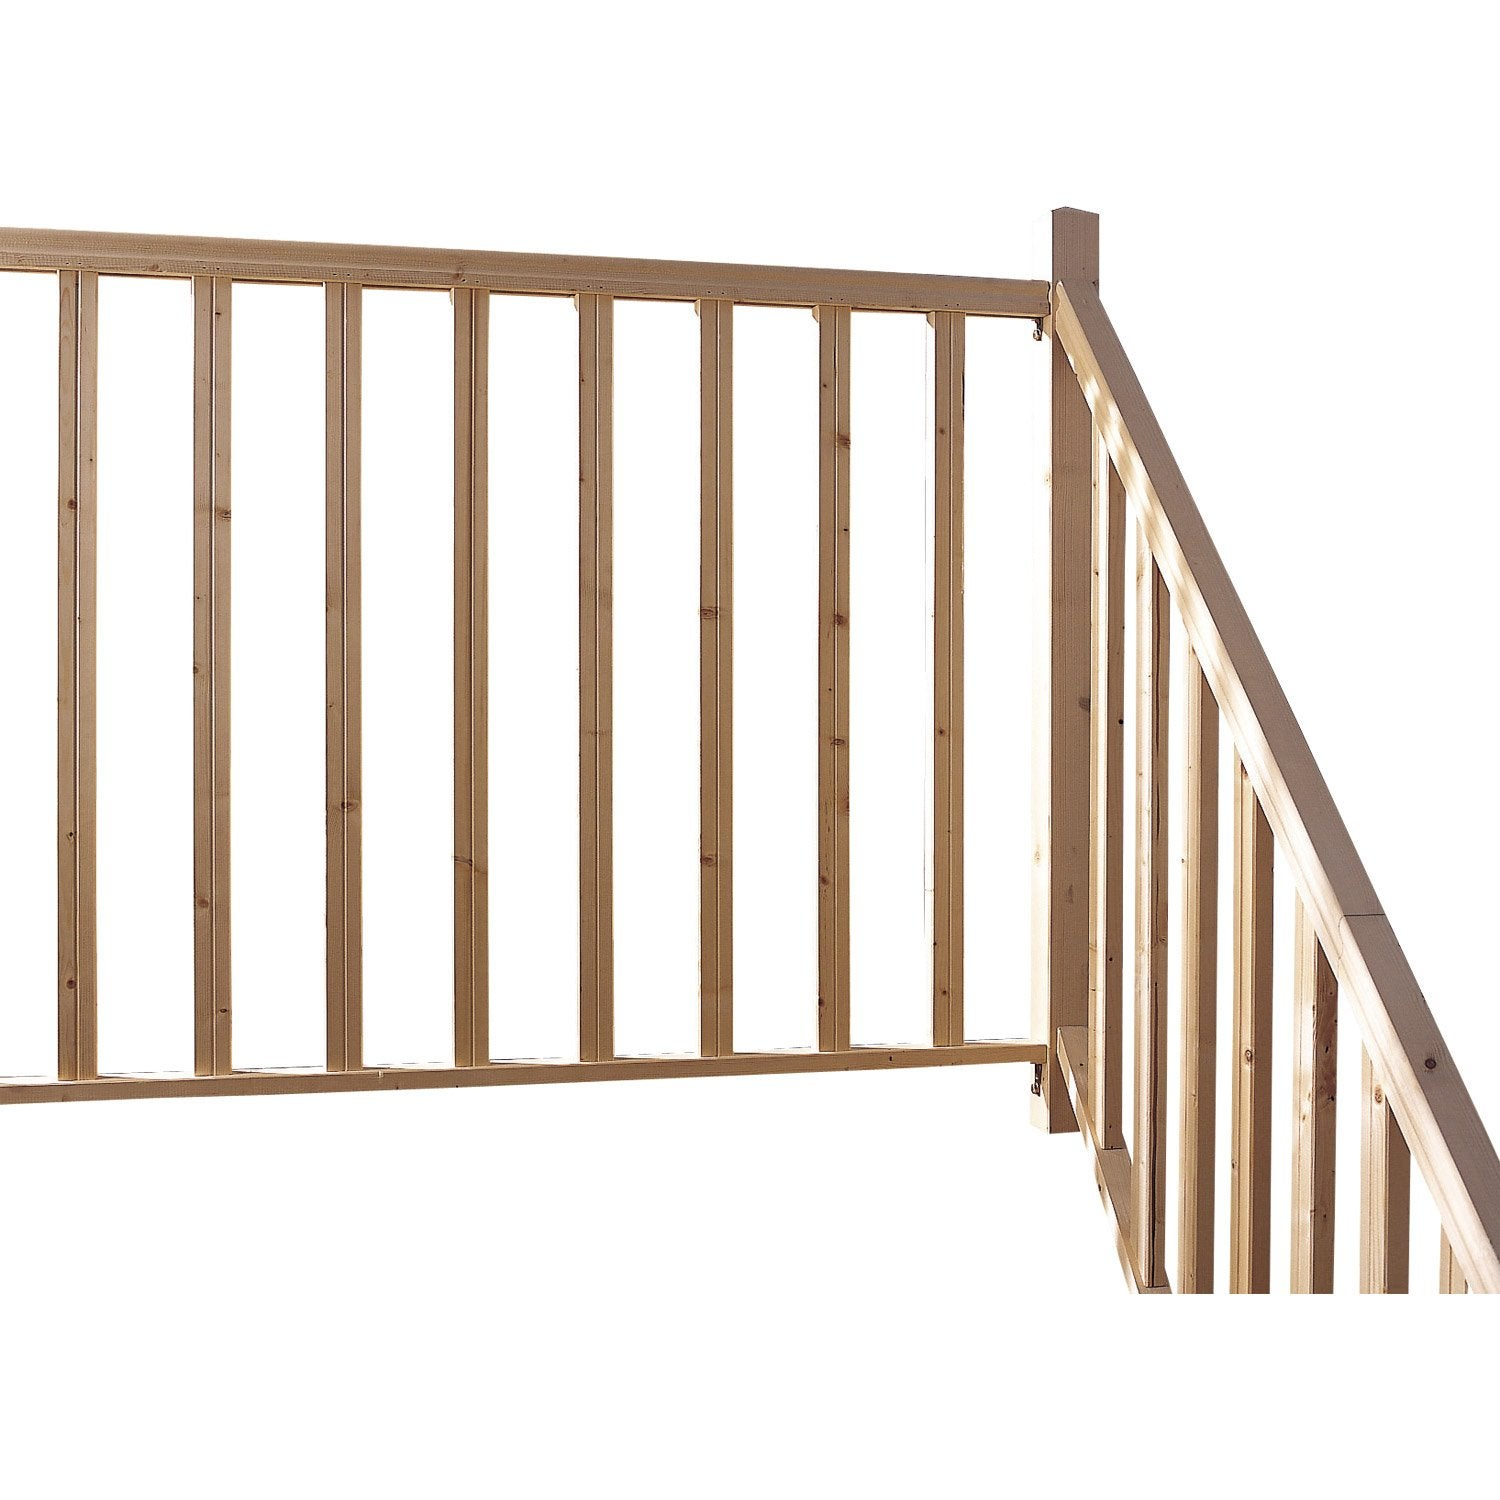 Kit city balustrade sapin 2m leroy merlin for Prix pose escalier leroy merlin